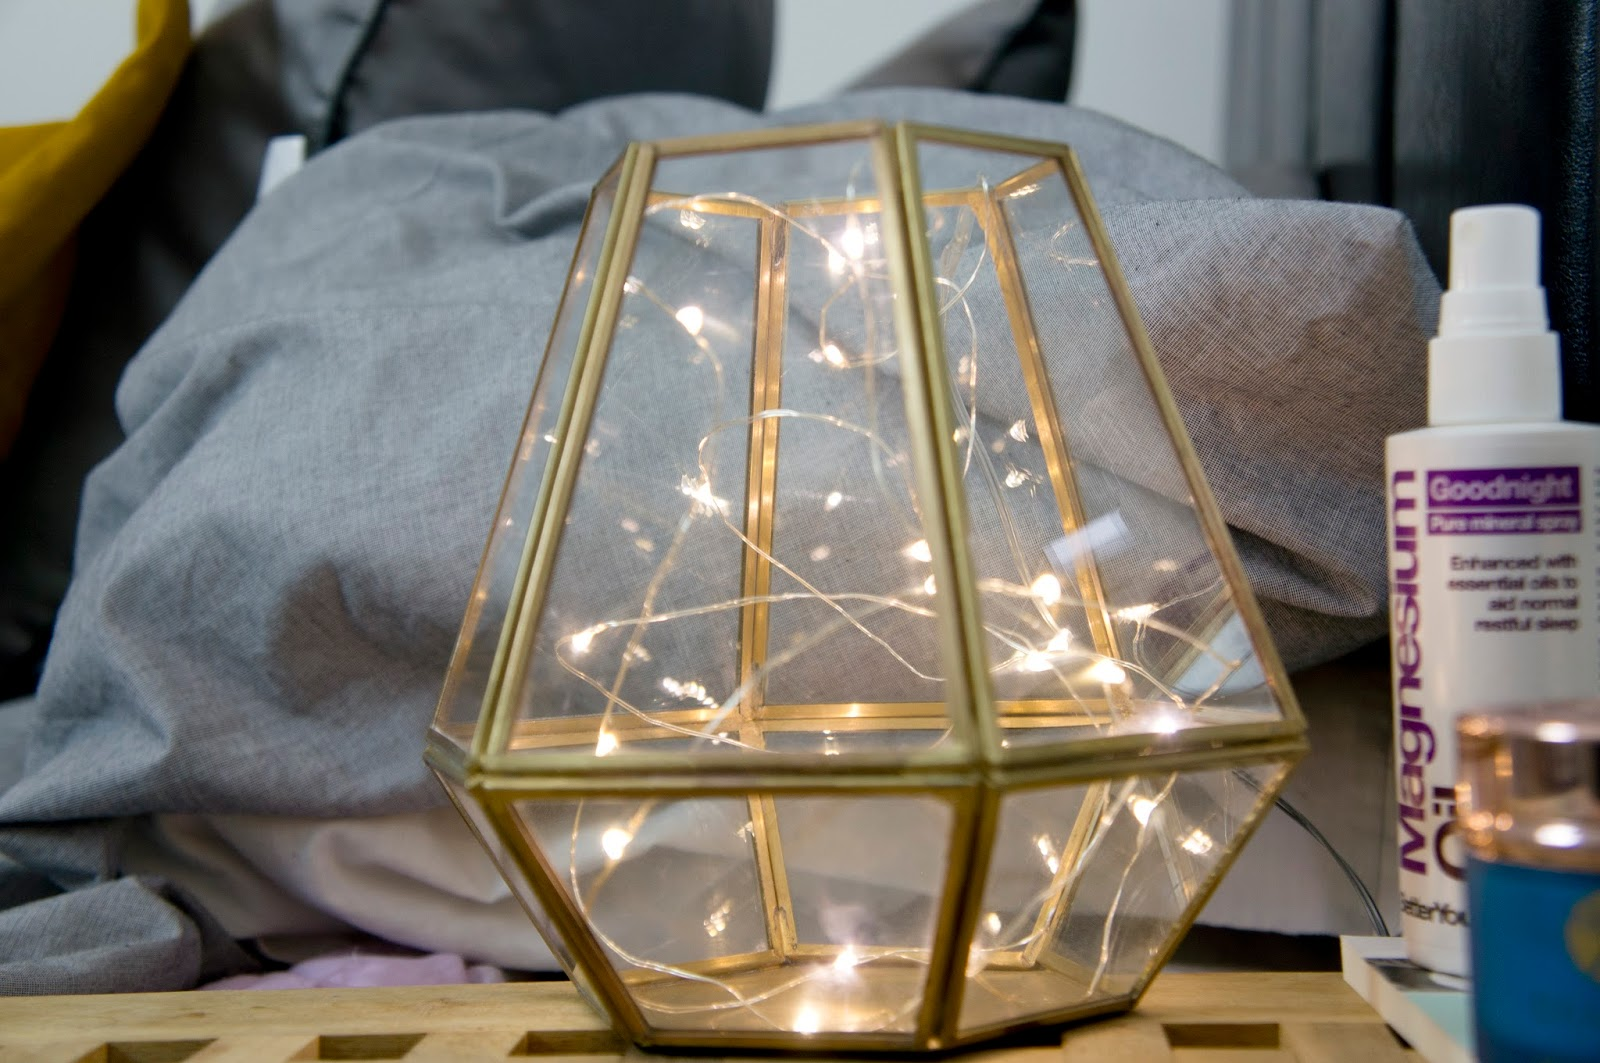 Lantern, from Debenhams, with LED lights (from amazon) to create your own bedside lamp